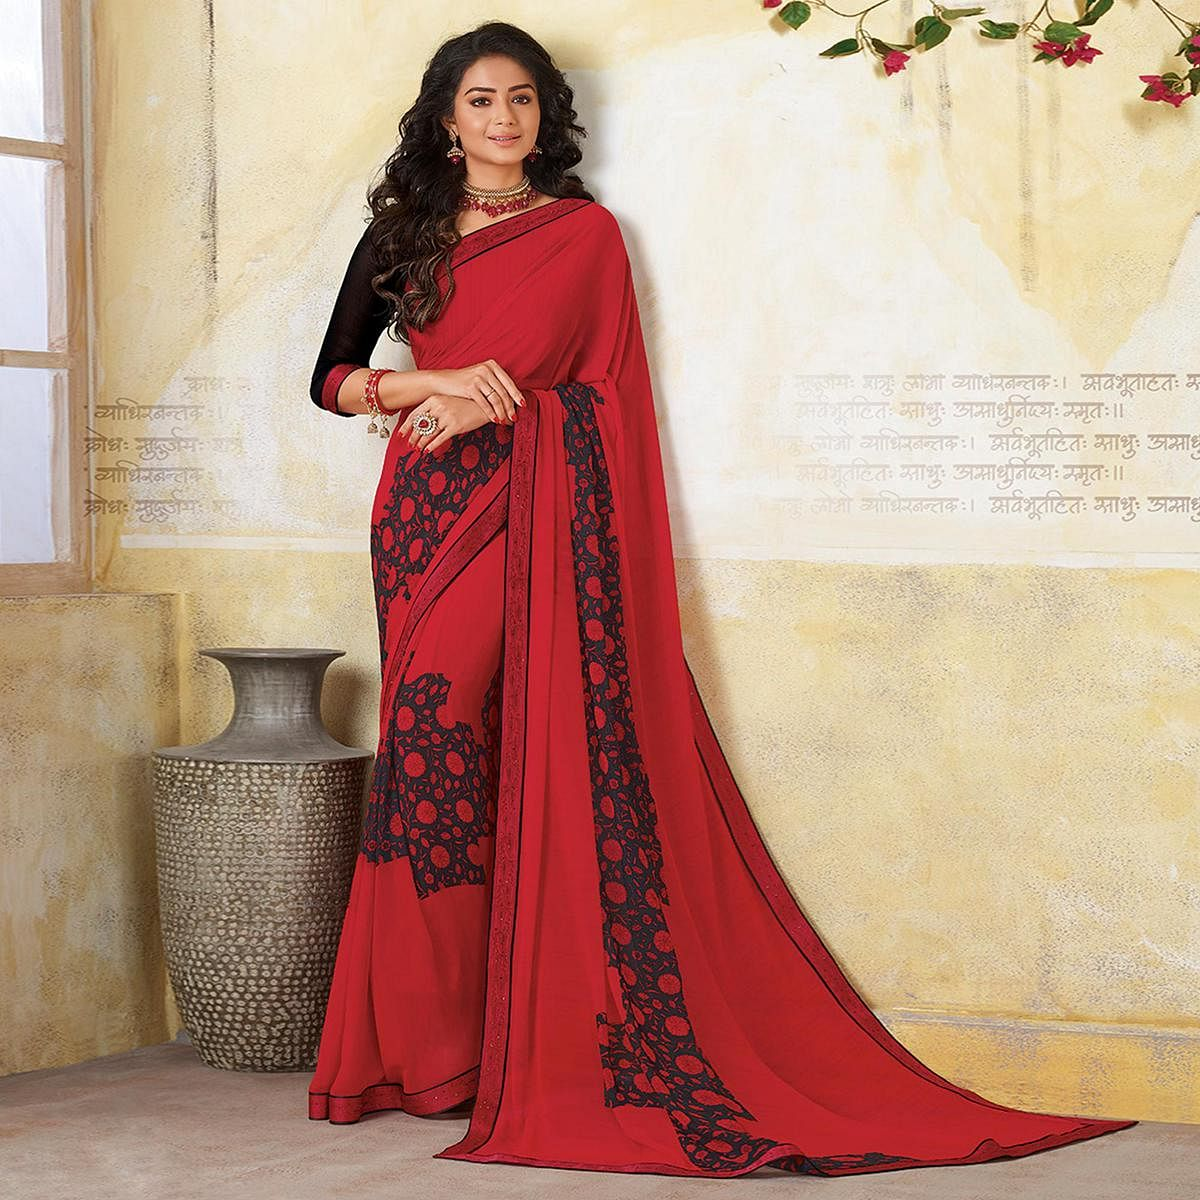 Exotic Red & Black Colored Casual Wear Printed Georgette Saree